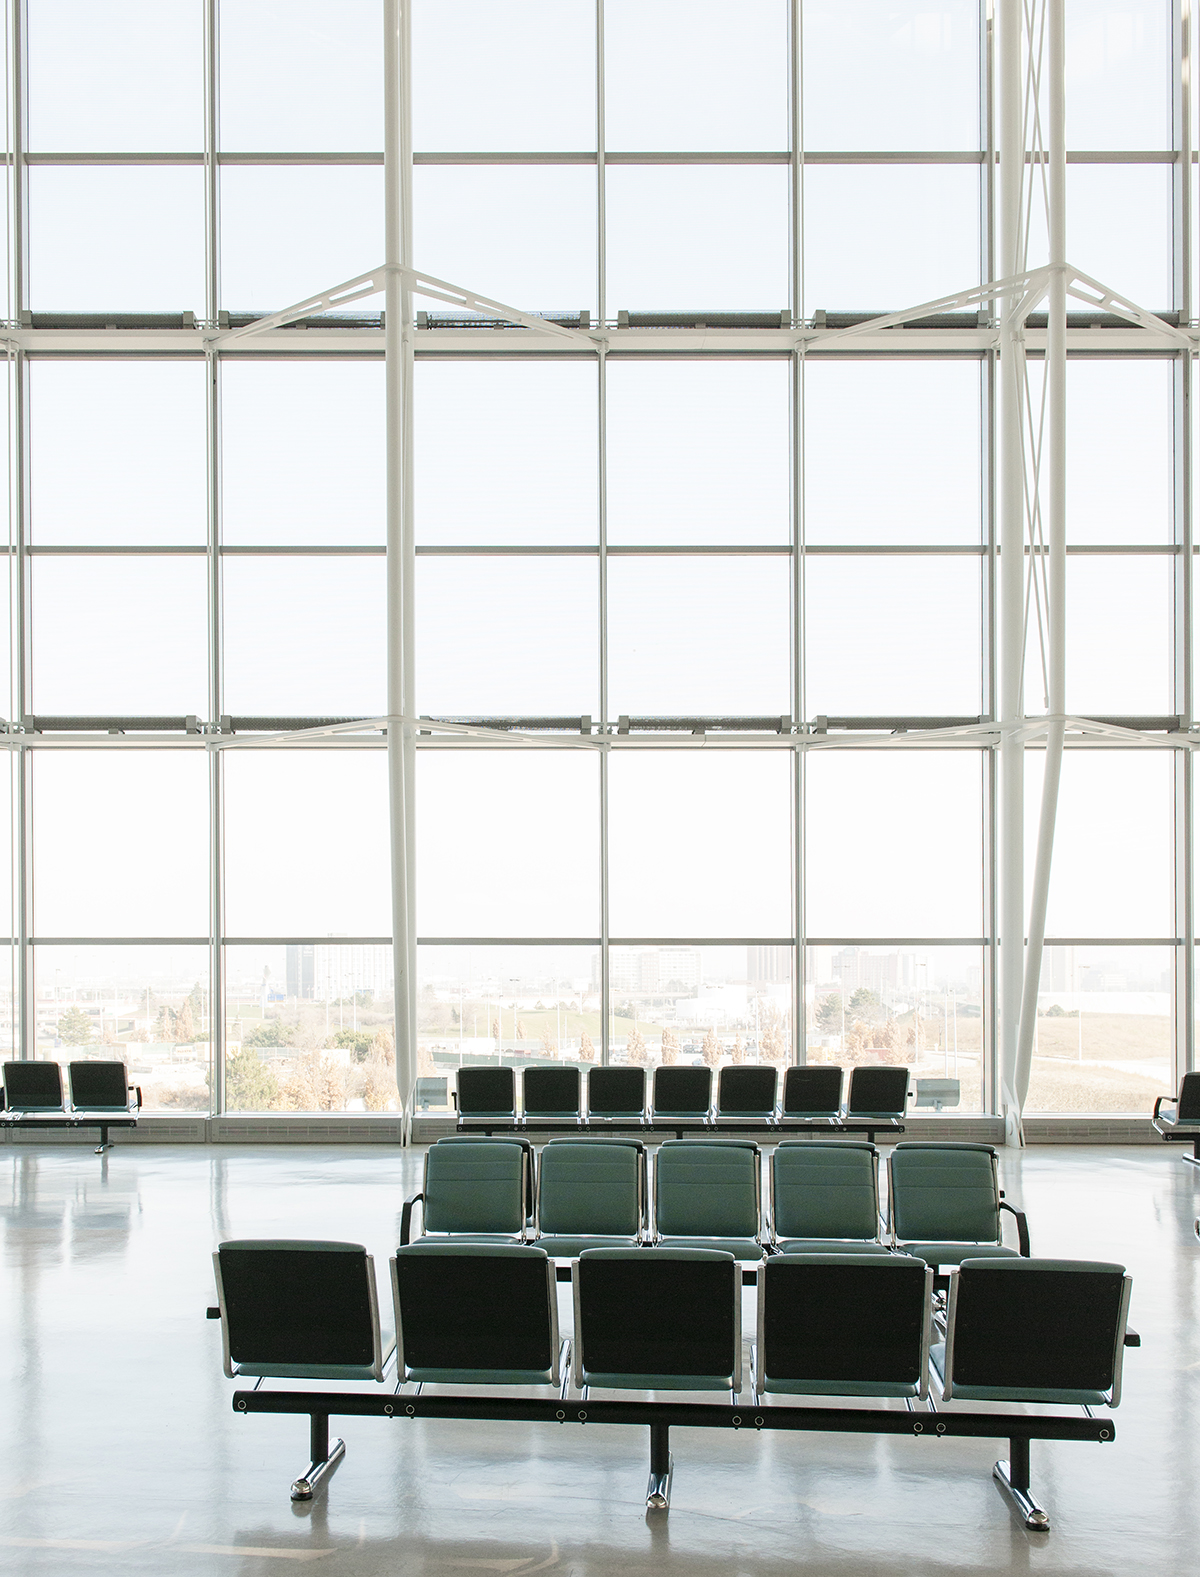 The Laird Co Pearson Airport Terminal 1 WIndow View Chairs Architecture Design Interiors Travel Photography for site.jpg